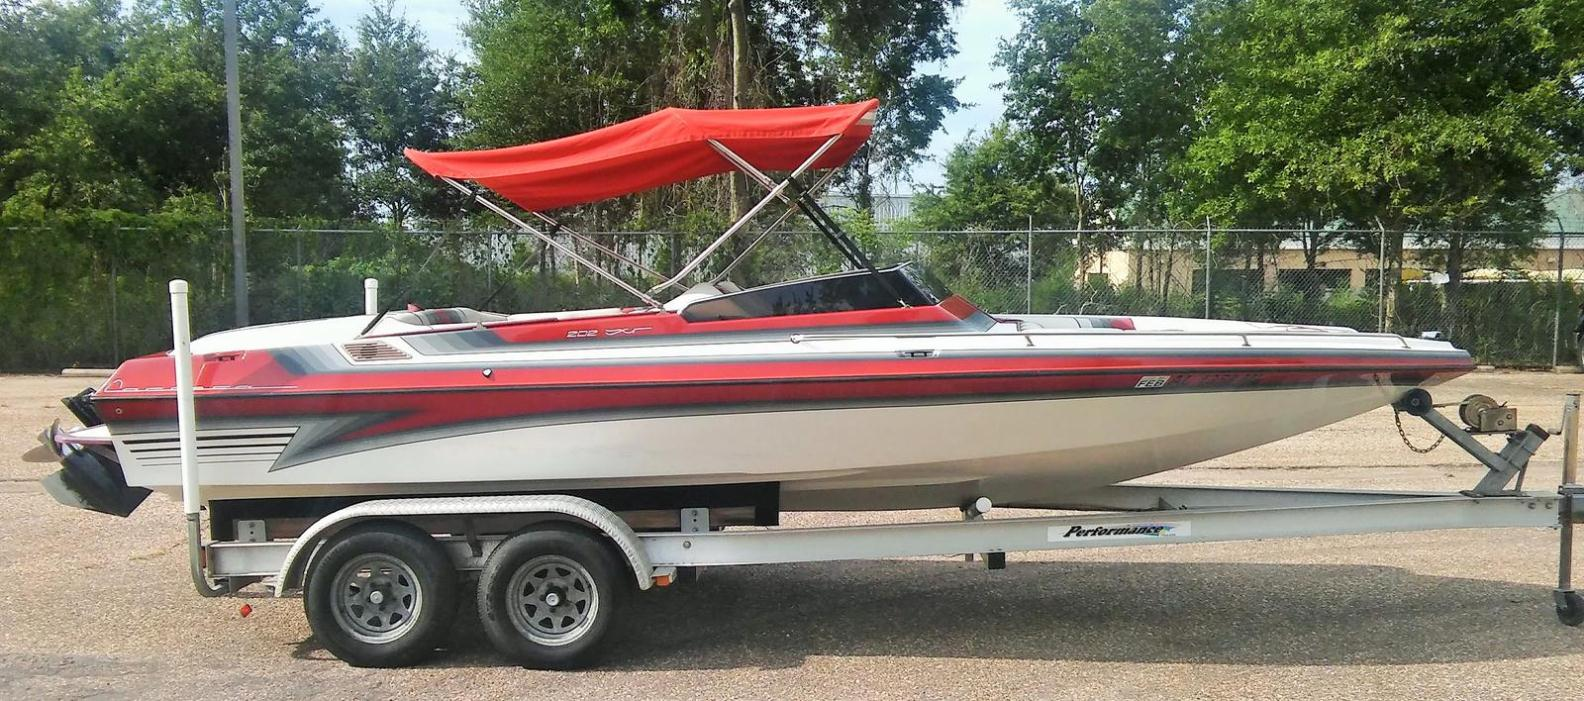 Carrera Boats Boats For Sale